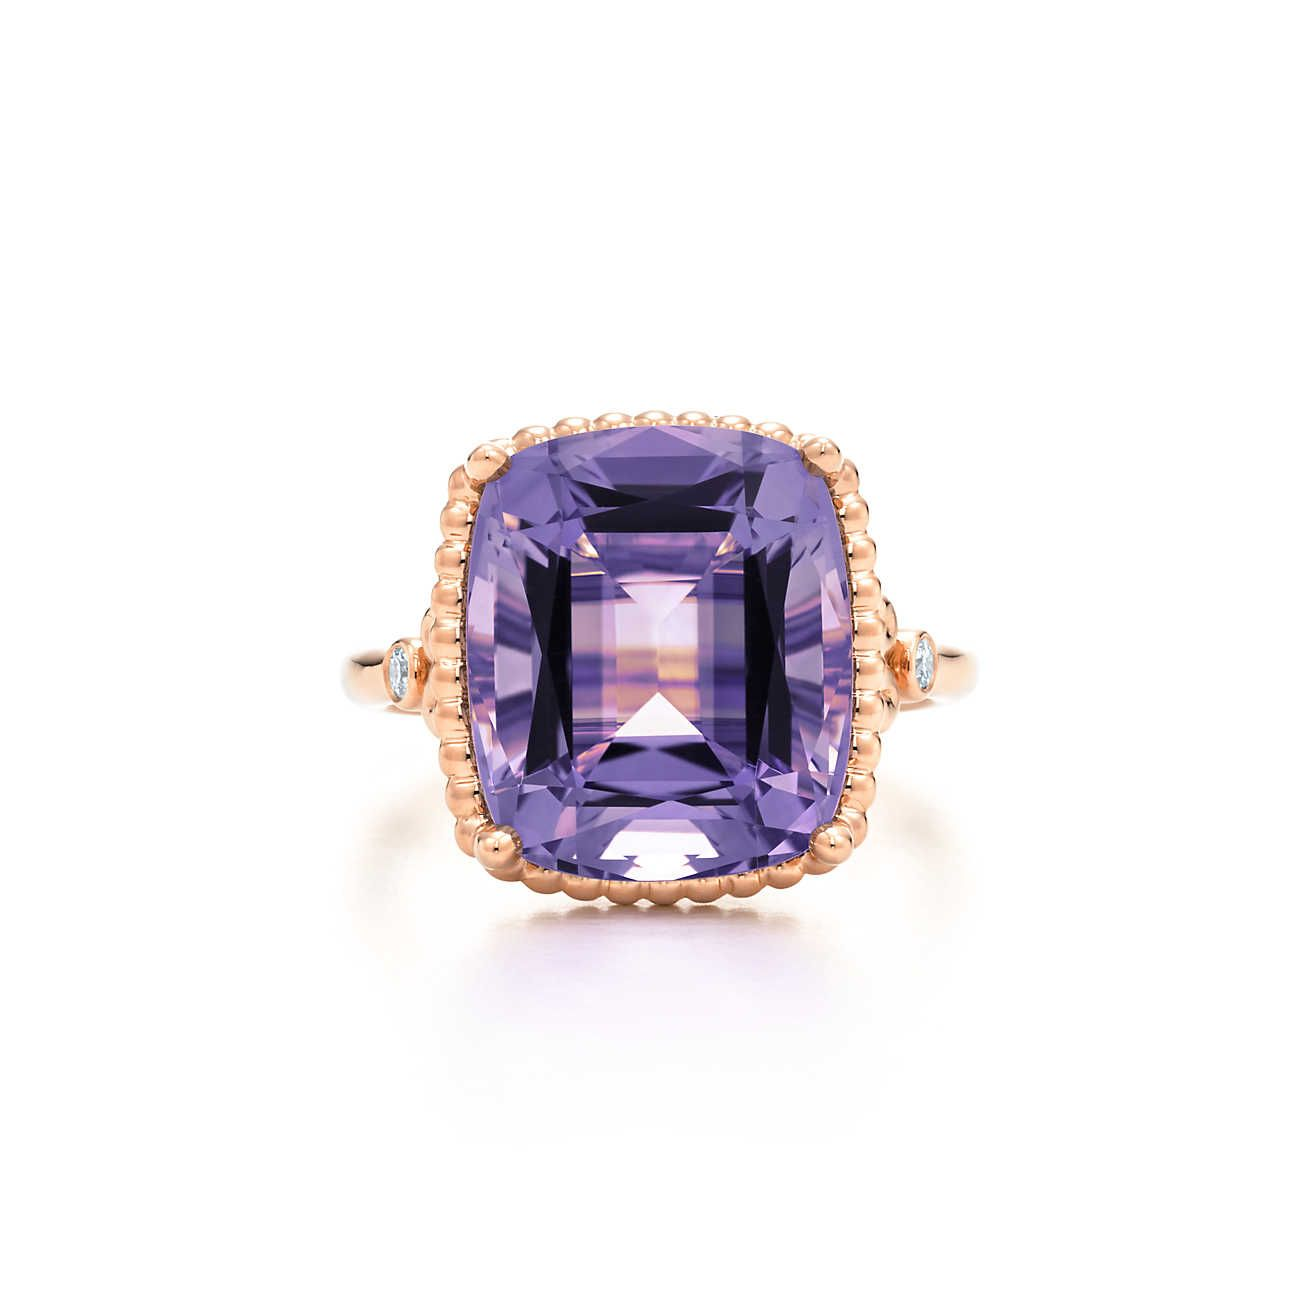 e6a9f5066 Tiffany Sparklers lavender amethyst ring in 18k rose gold with diamonds. |  Tiffany & Co.